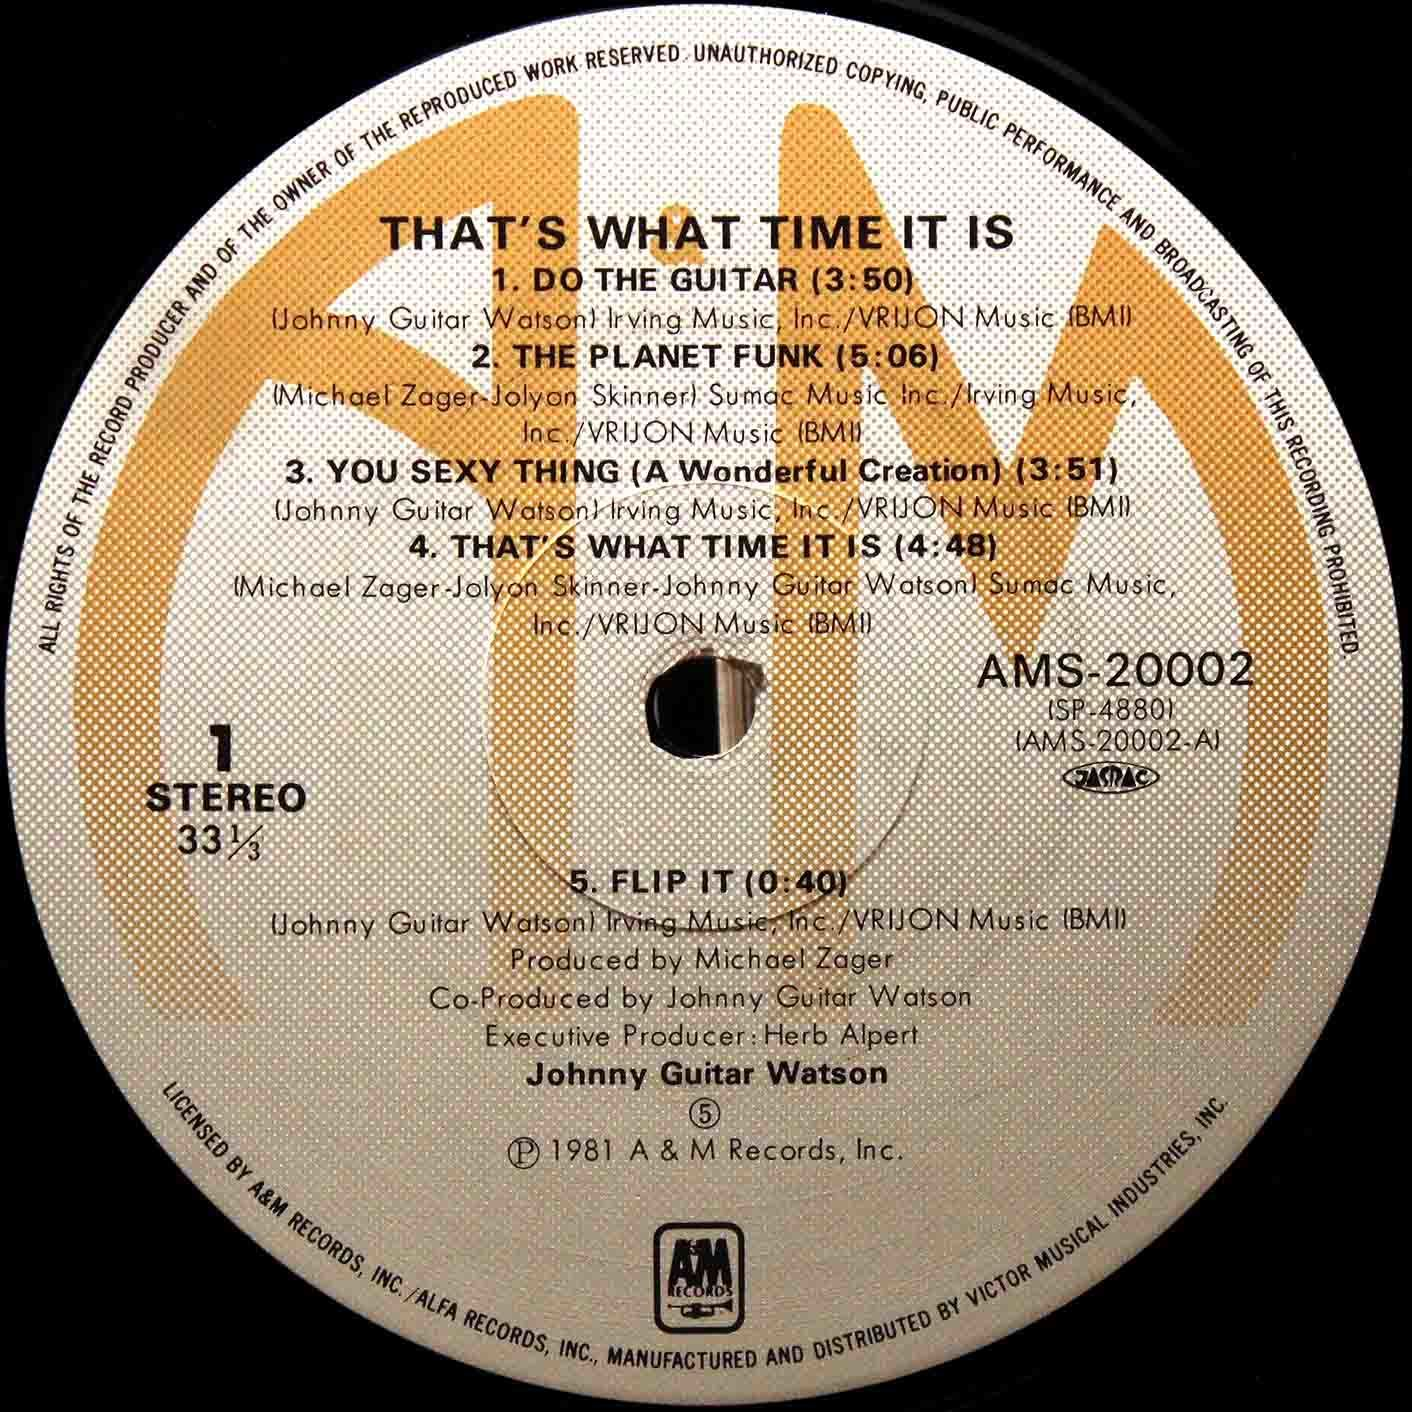 Johnny Guitar Watson  Thats What Time It Is 04